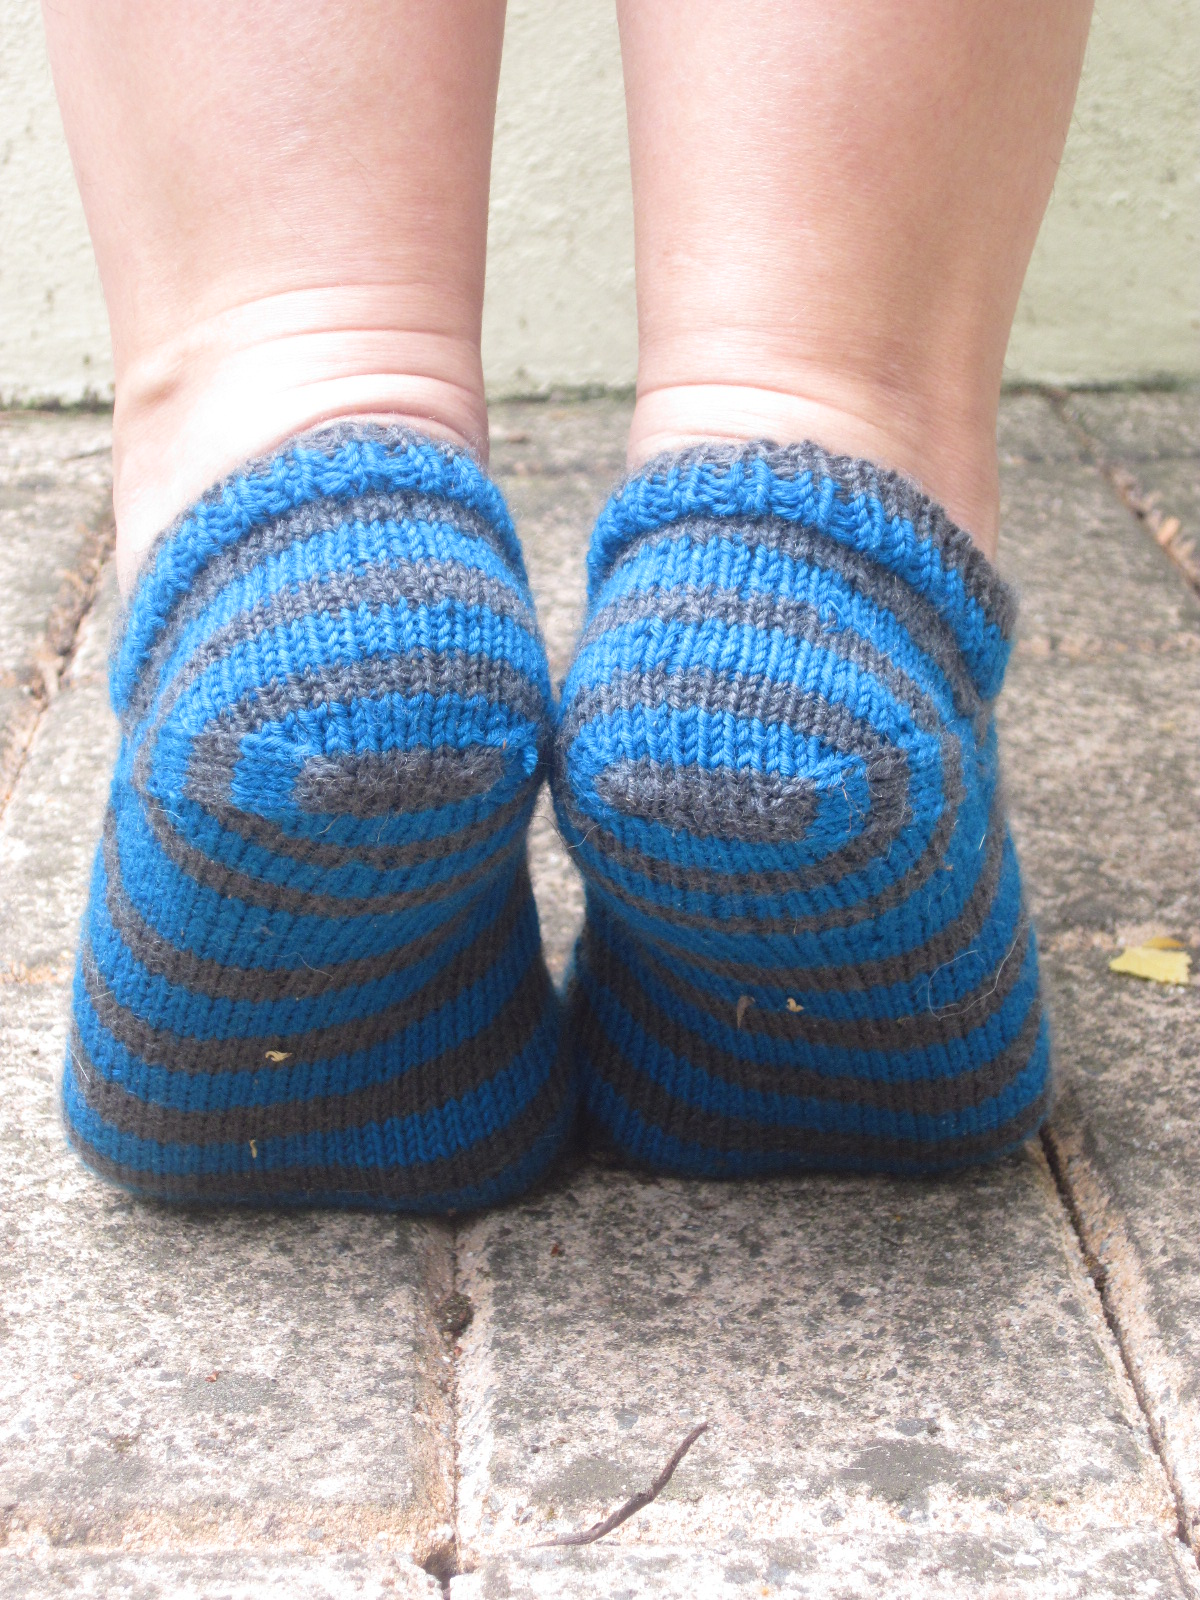 Best Way Join Yarn Knitting What I Made By Sharon The Sneaker Liner Project Perfect